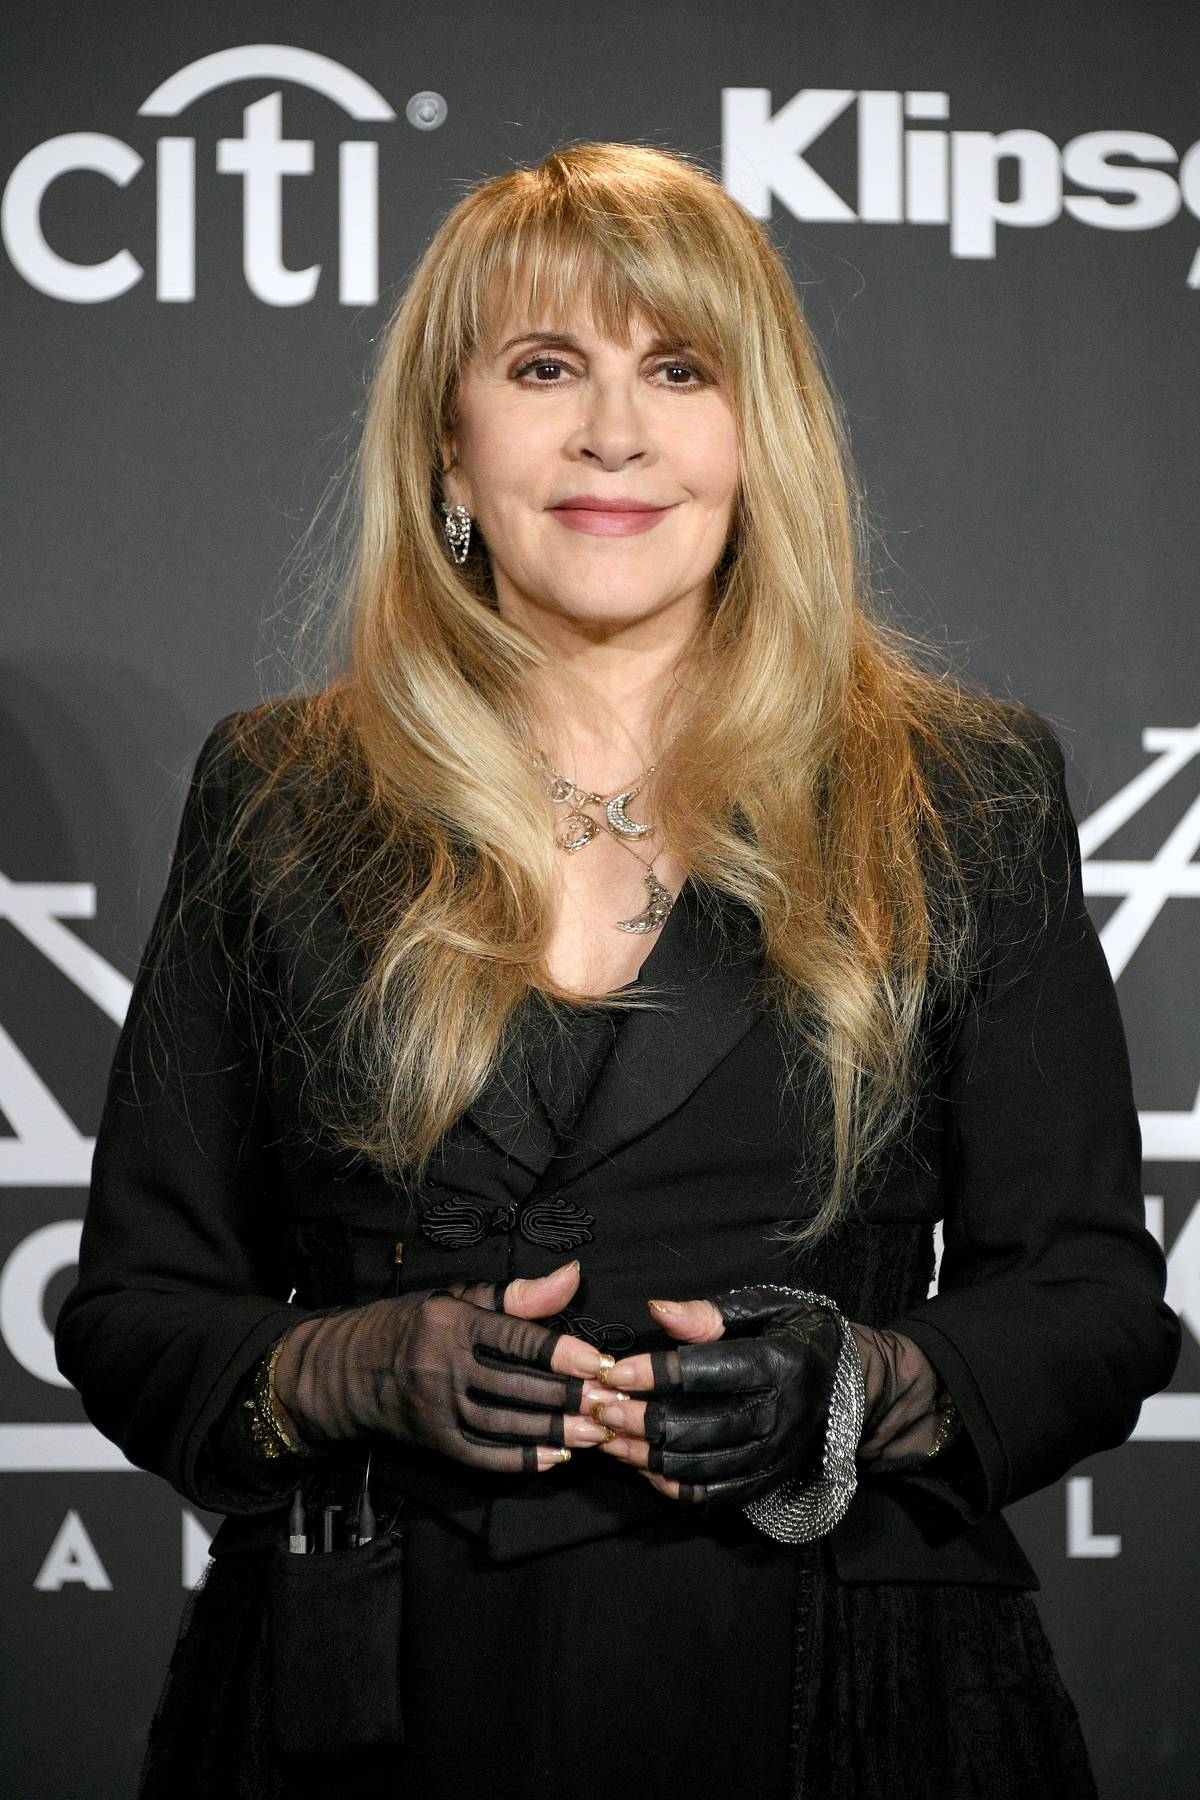 NEW YORK, NEW YORK - MARCH 29: Inductee Stevie Nicks attends the 2019 Rock & Roll Hall Of Fame Induction Ceremony at Barclays Center on March 29, 2019 in New York City.